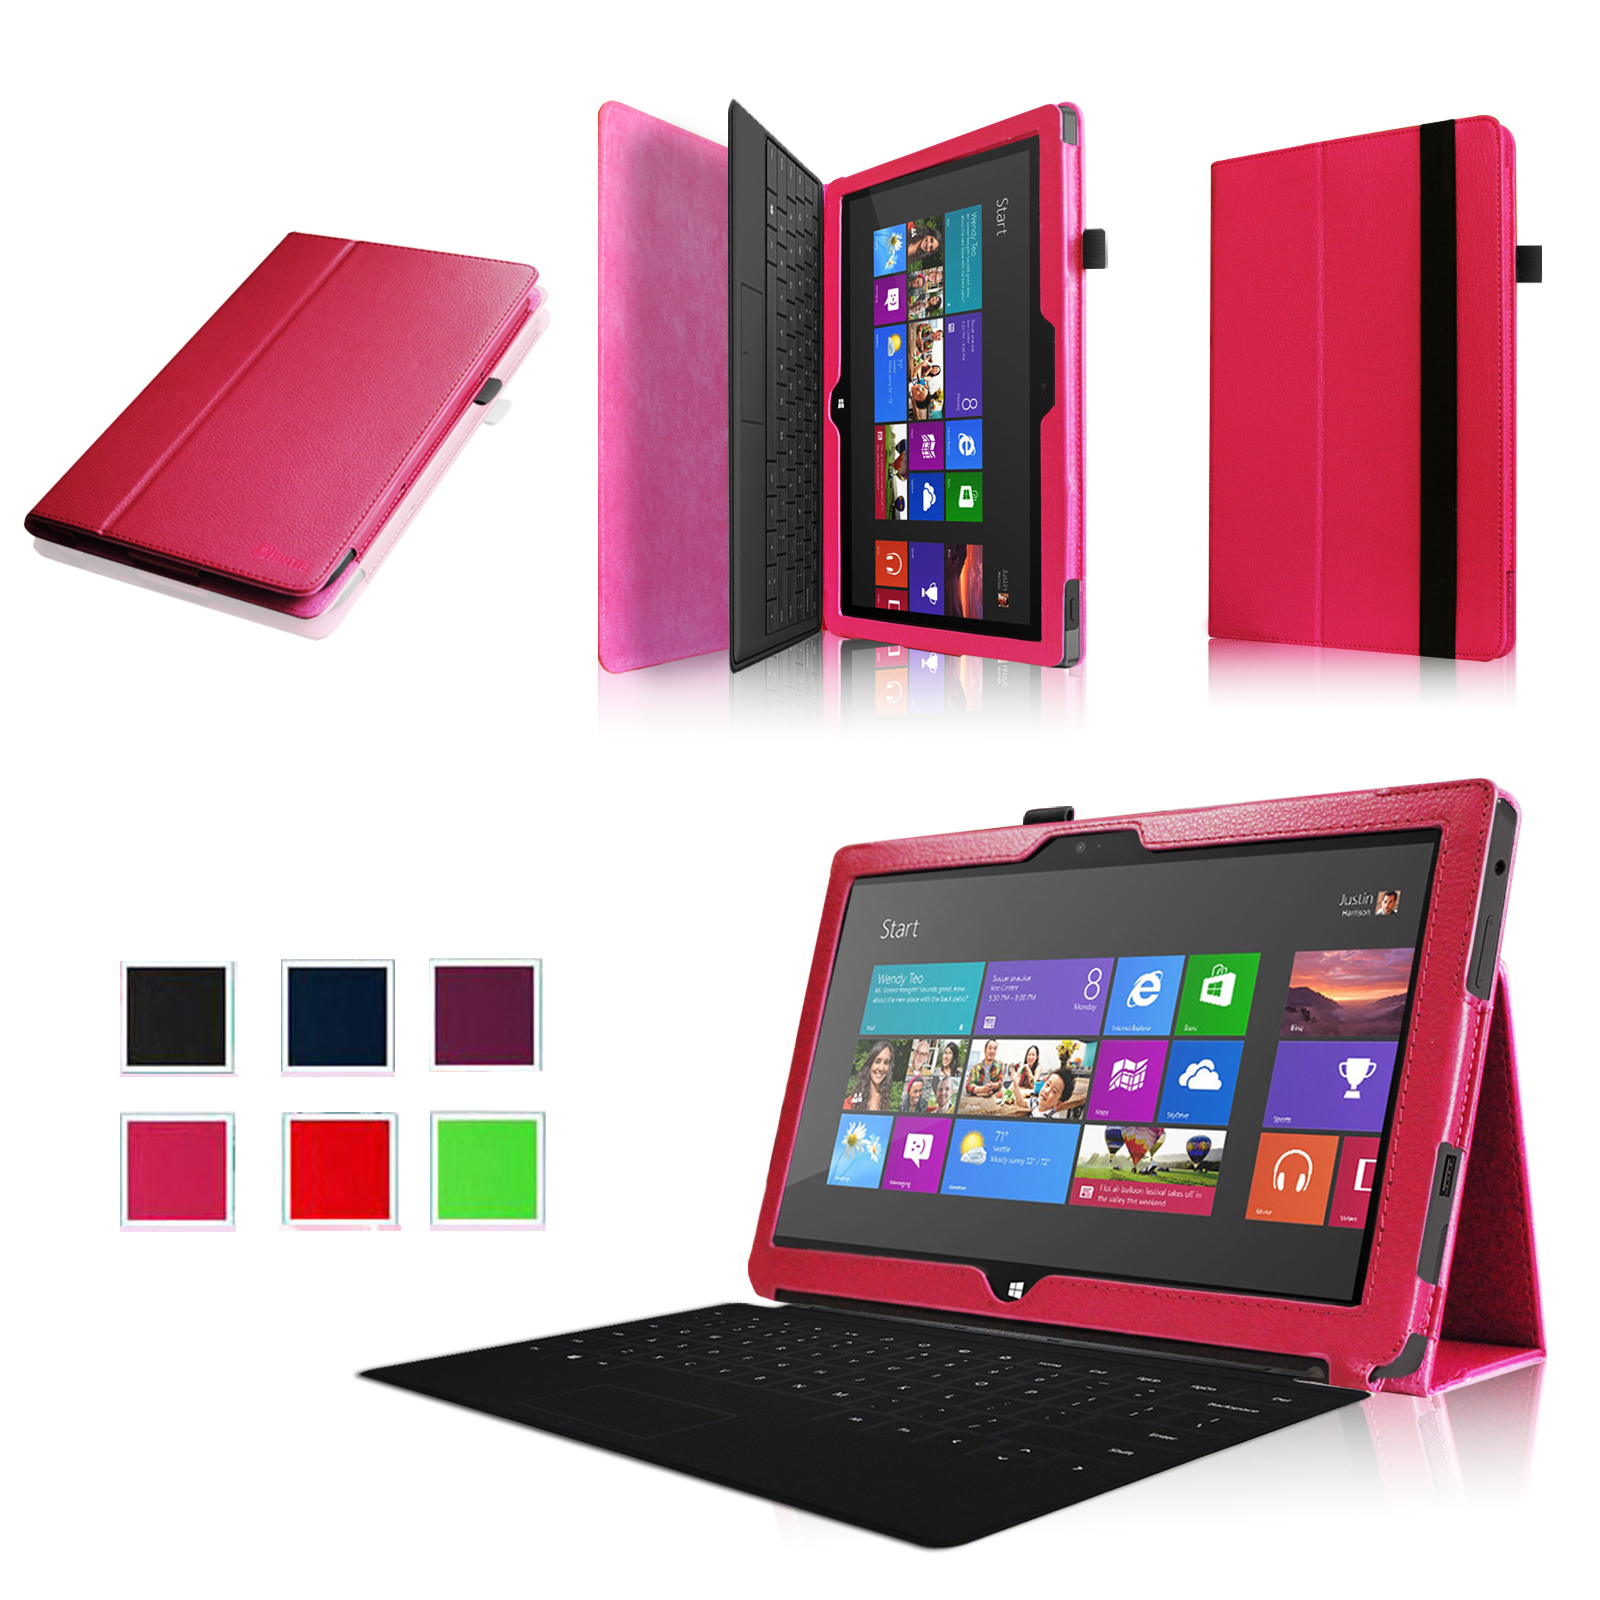 Fintie Microsoft Surface RT / Surface 2 10.6 inch Tablet Folio Case - Slim Fit PU Leather Stand Cover, Magenta